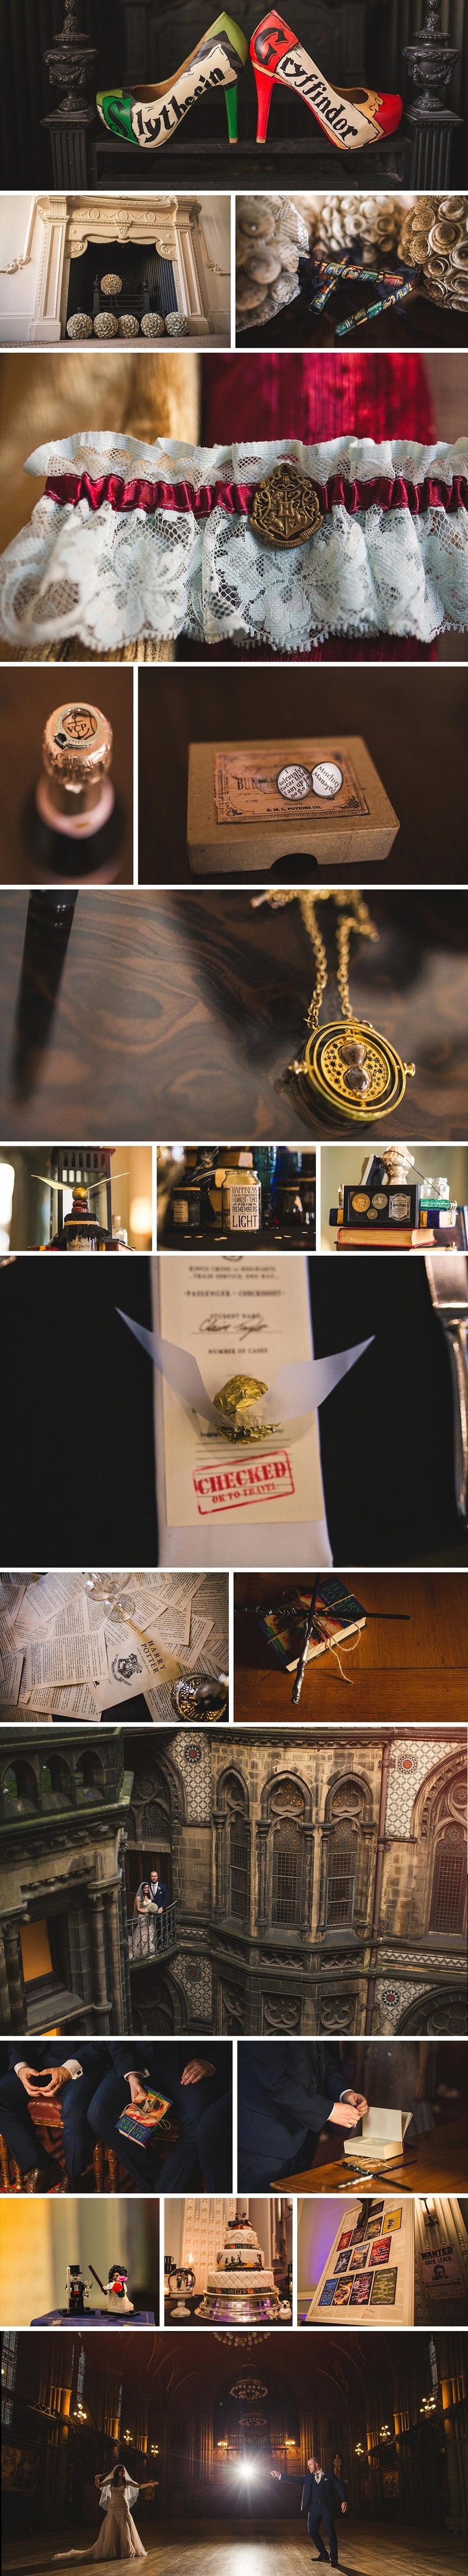 unusual-themed-wedding-with-a-harry-potter-theme